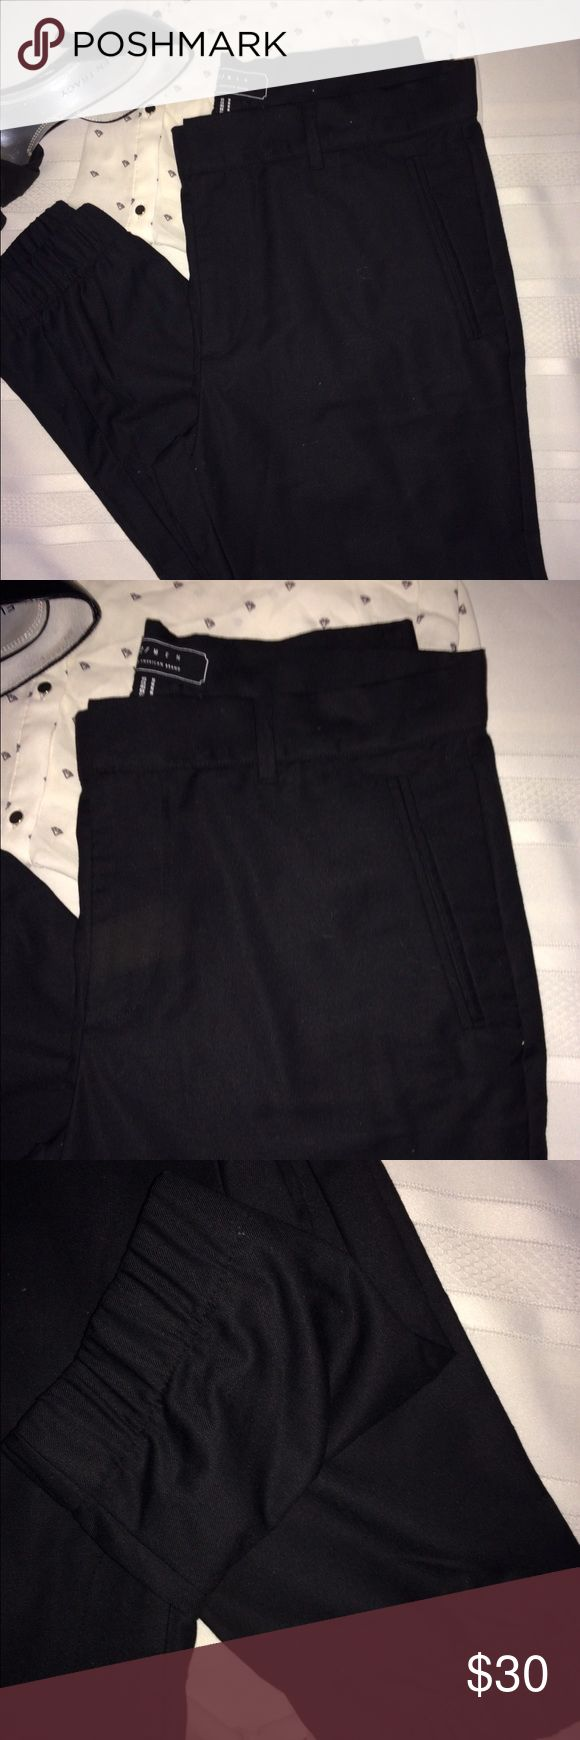 😎😍🔥Genie Trouser Pants😎😍🔥 EUC. Worn Once😚 These pants are boss, sexy, chic!! They are like men's trousers but for a woman and with elastic bottoms😮😍😎. Just sharp for no reason😎😘 #UnisexIthink 21men Pants Trousers